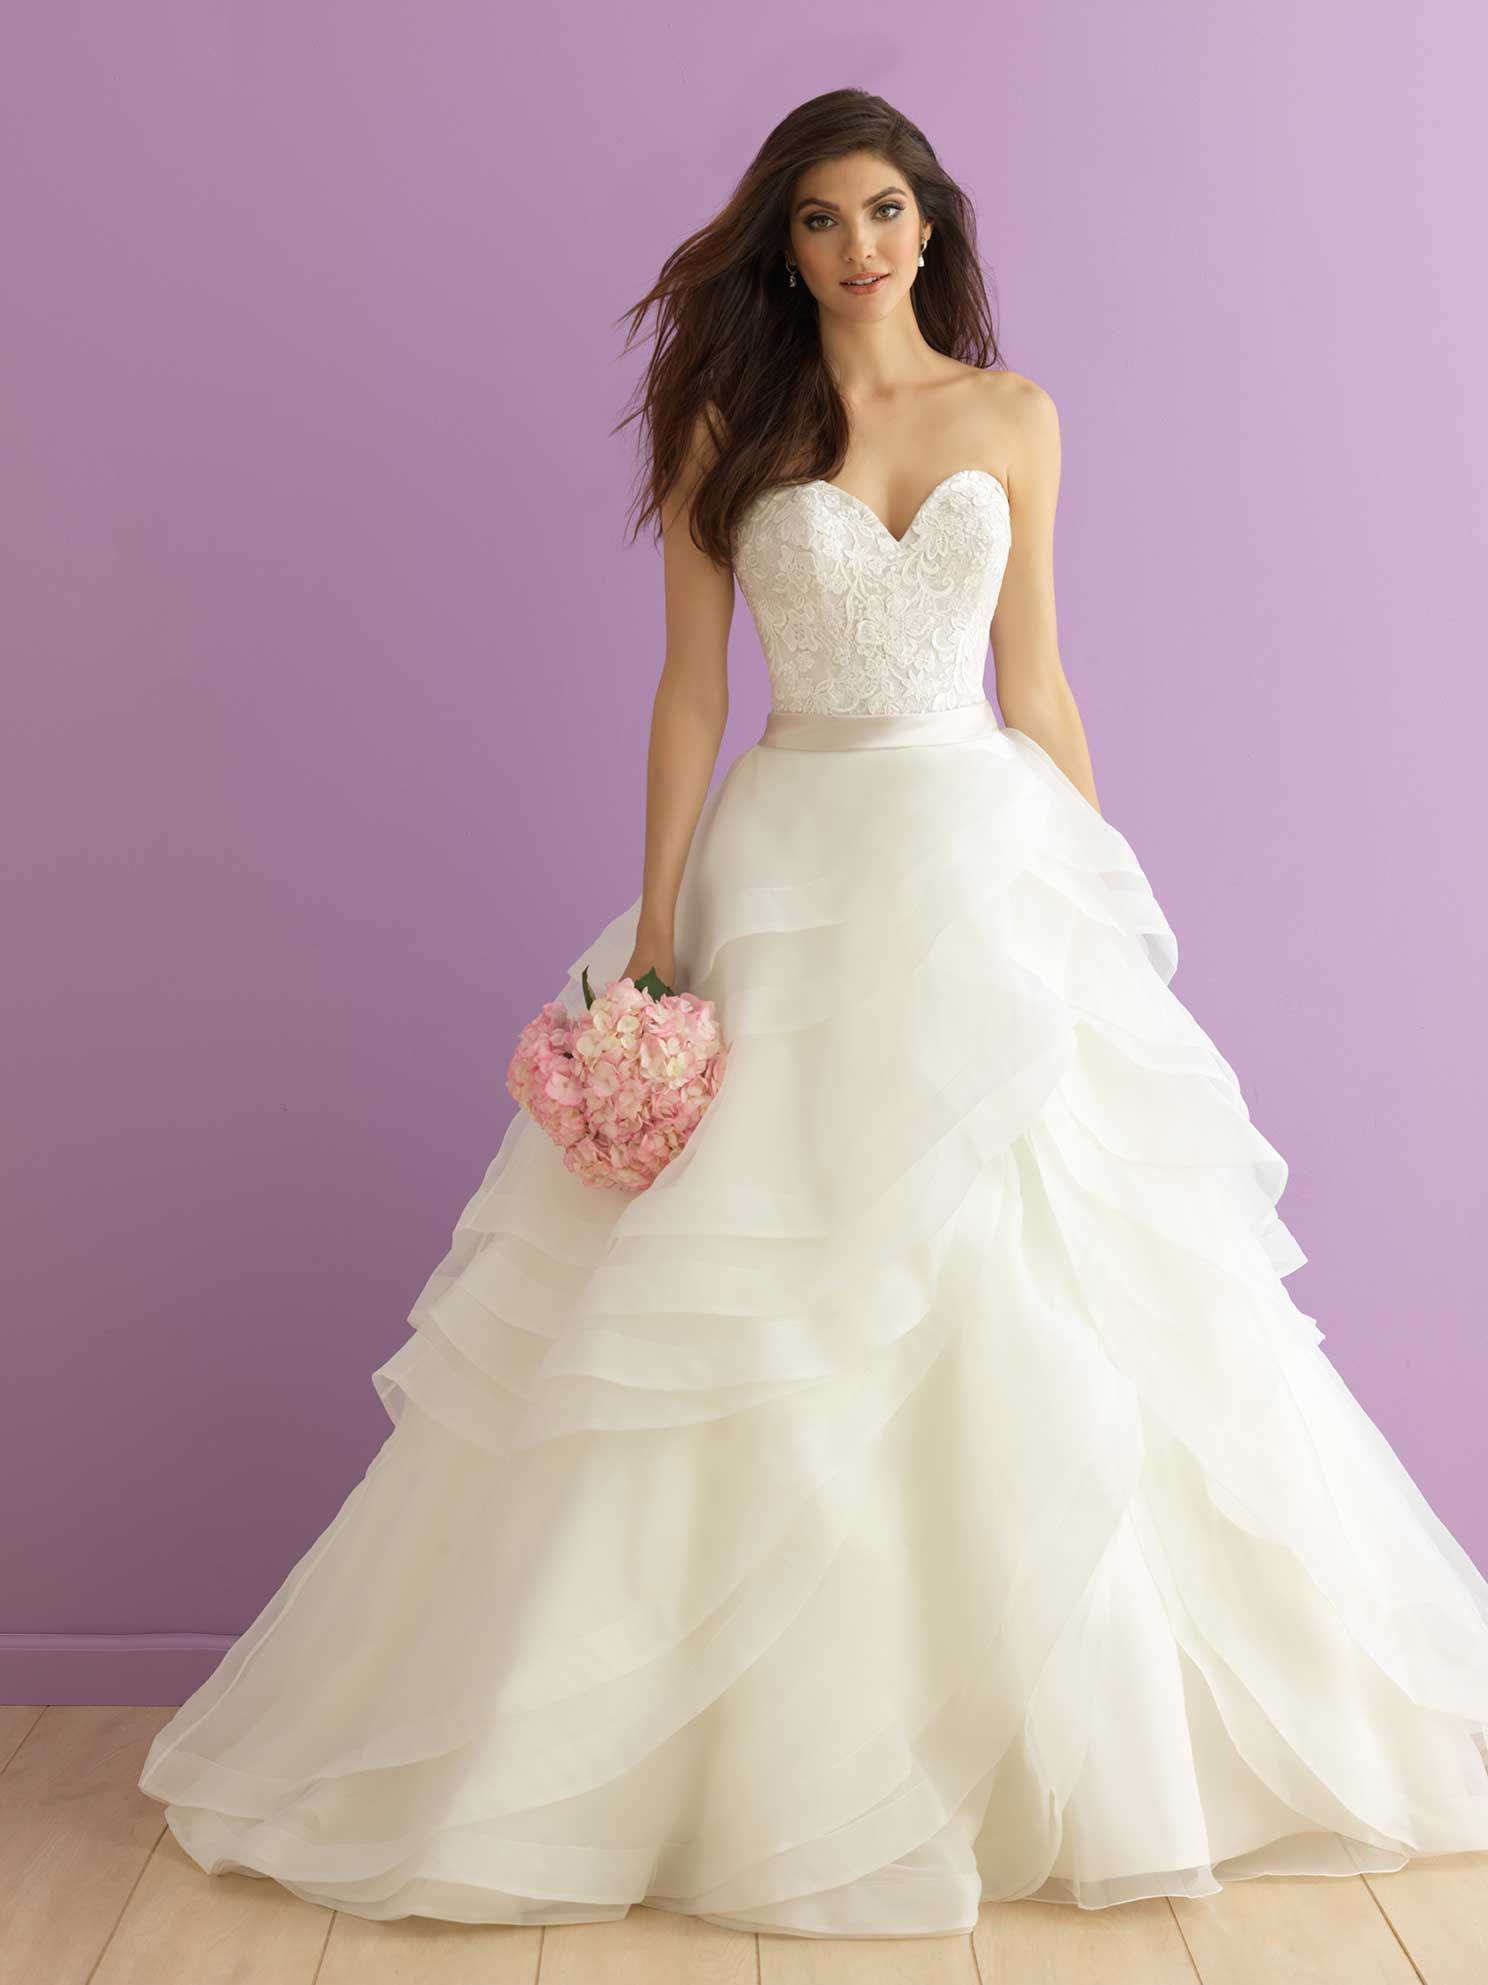 2905 by Allure Bridal from Lori G Derby